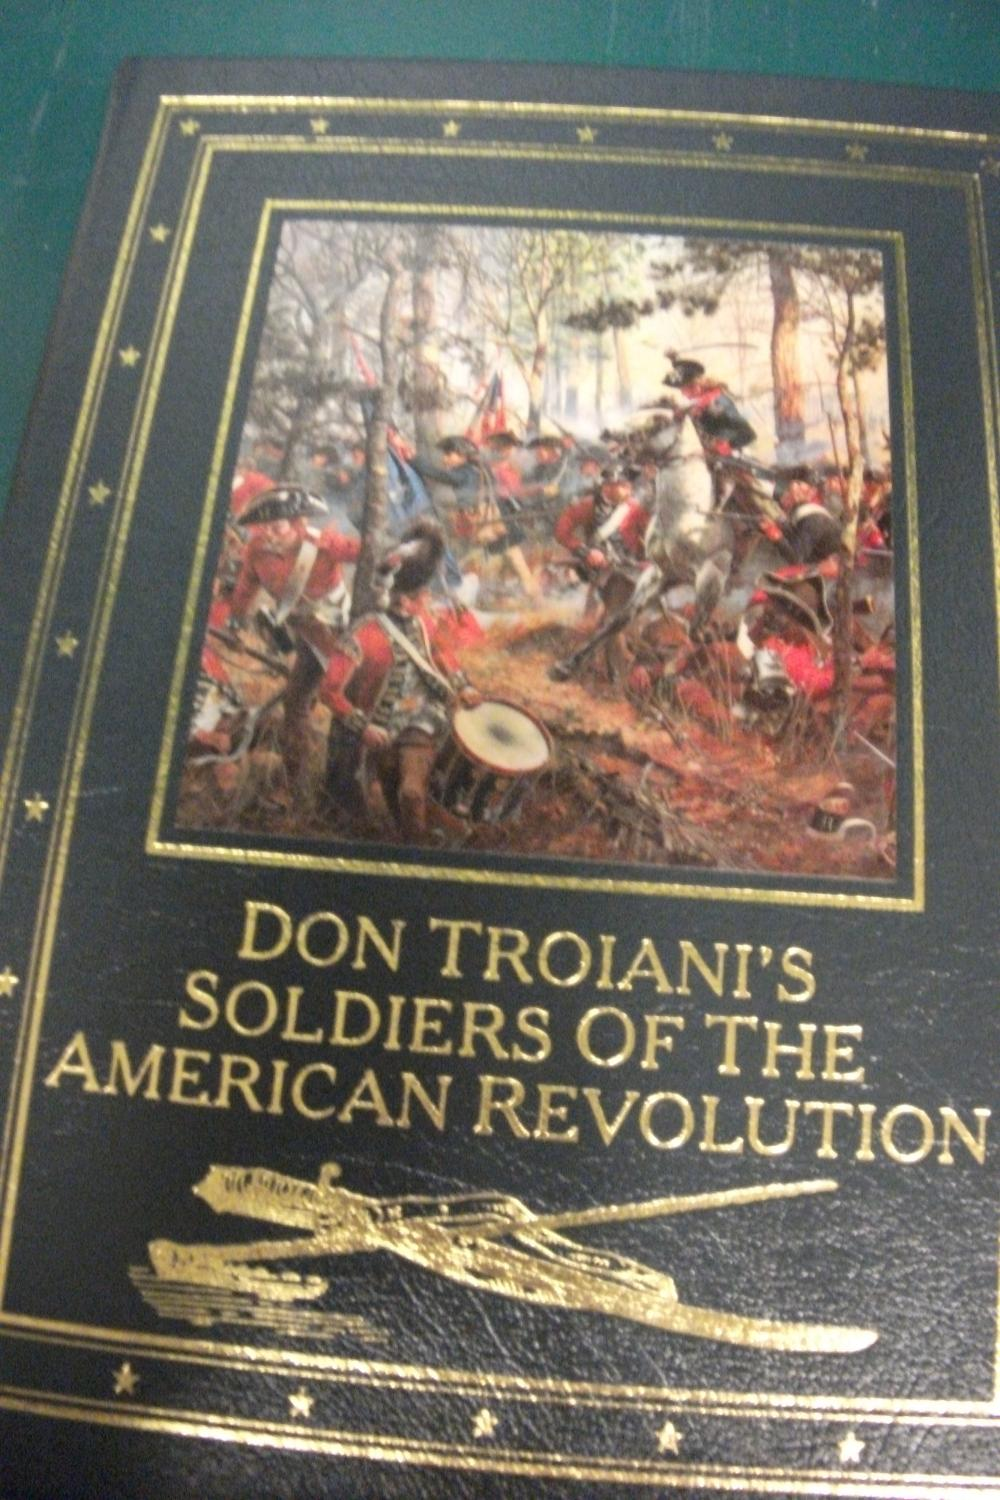 Don Troiani's Soldiers of the American